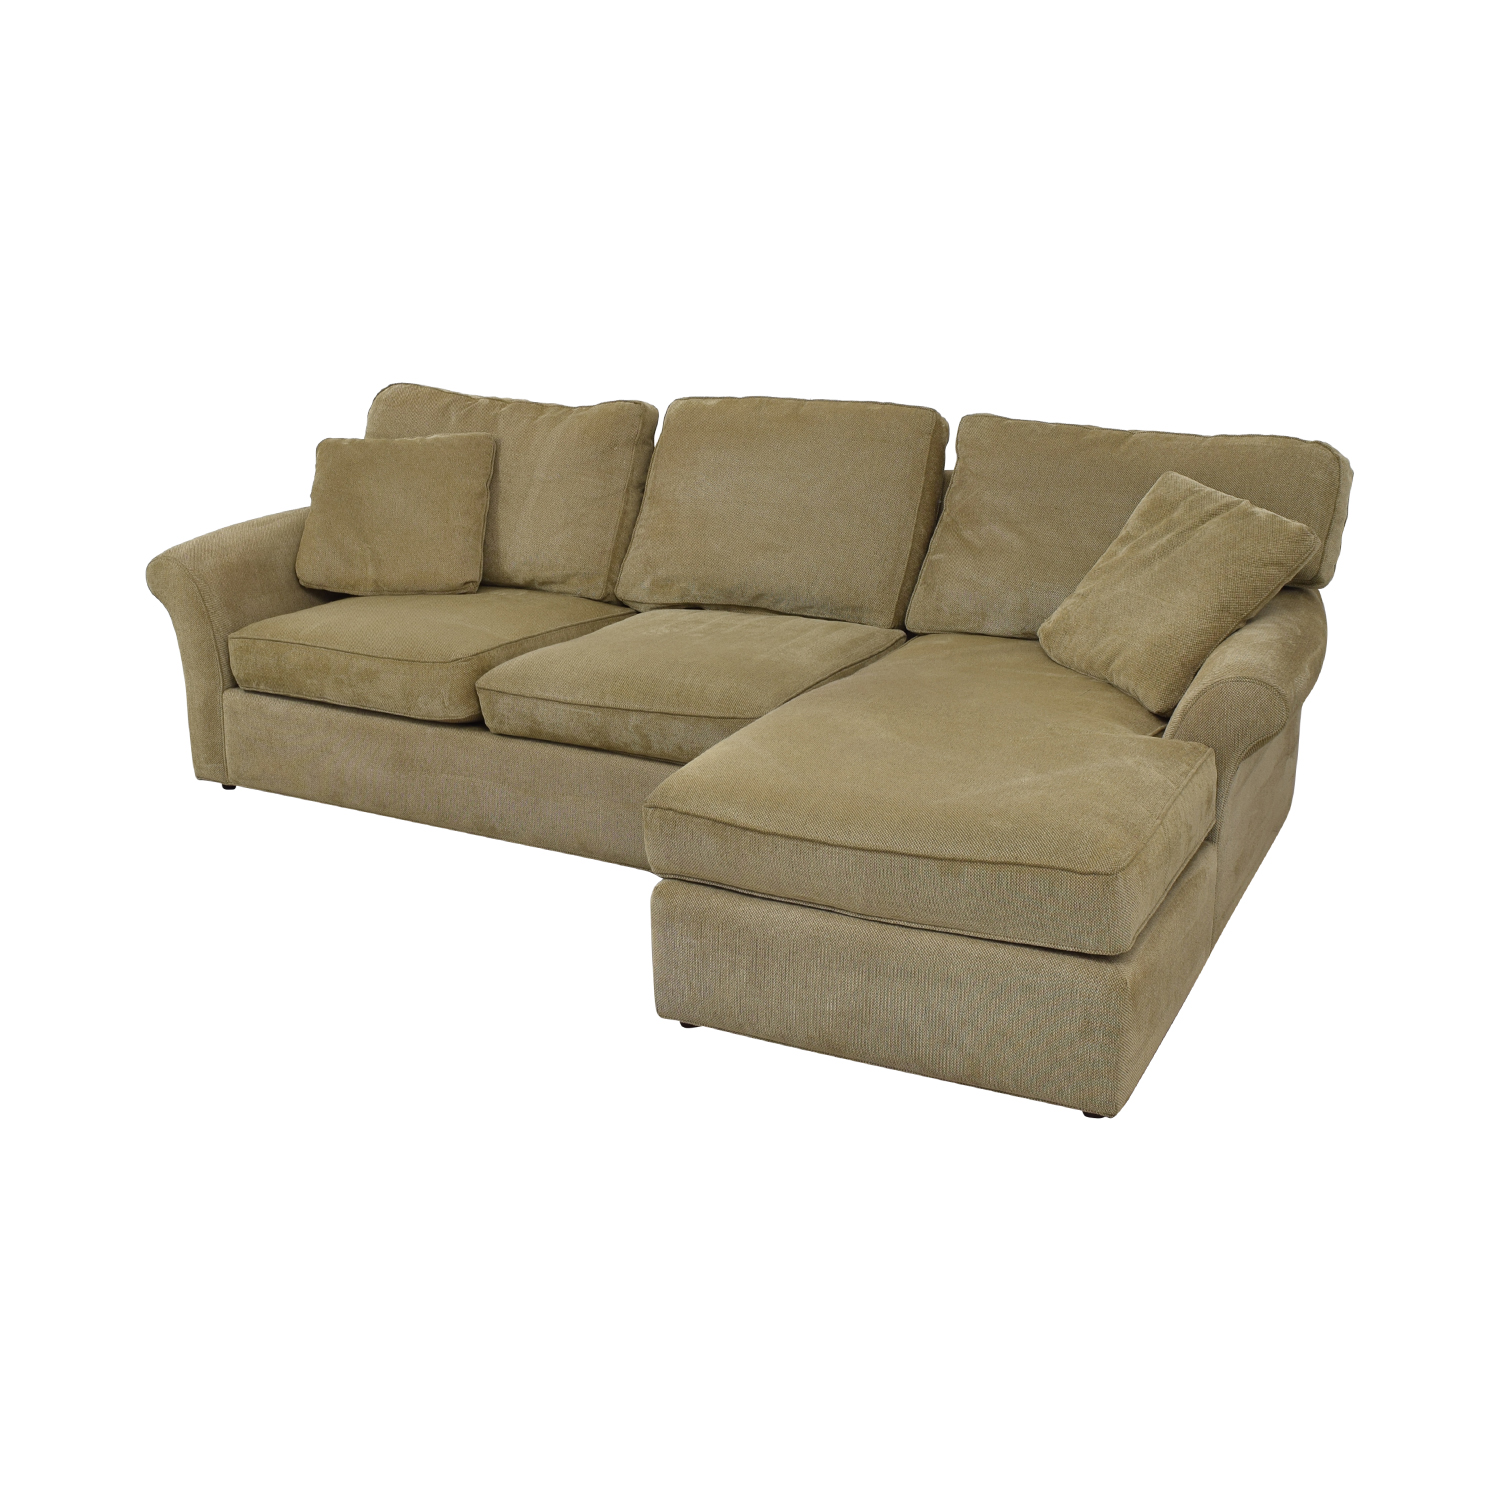 Macy's Macy's Beige Chaise Sectional dimensions